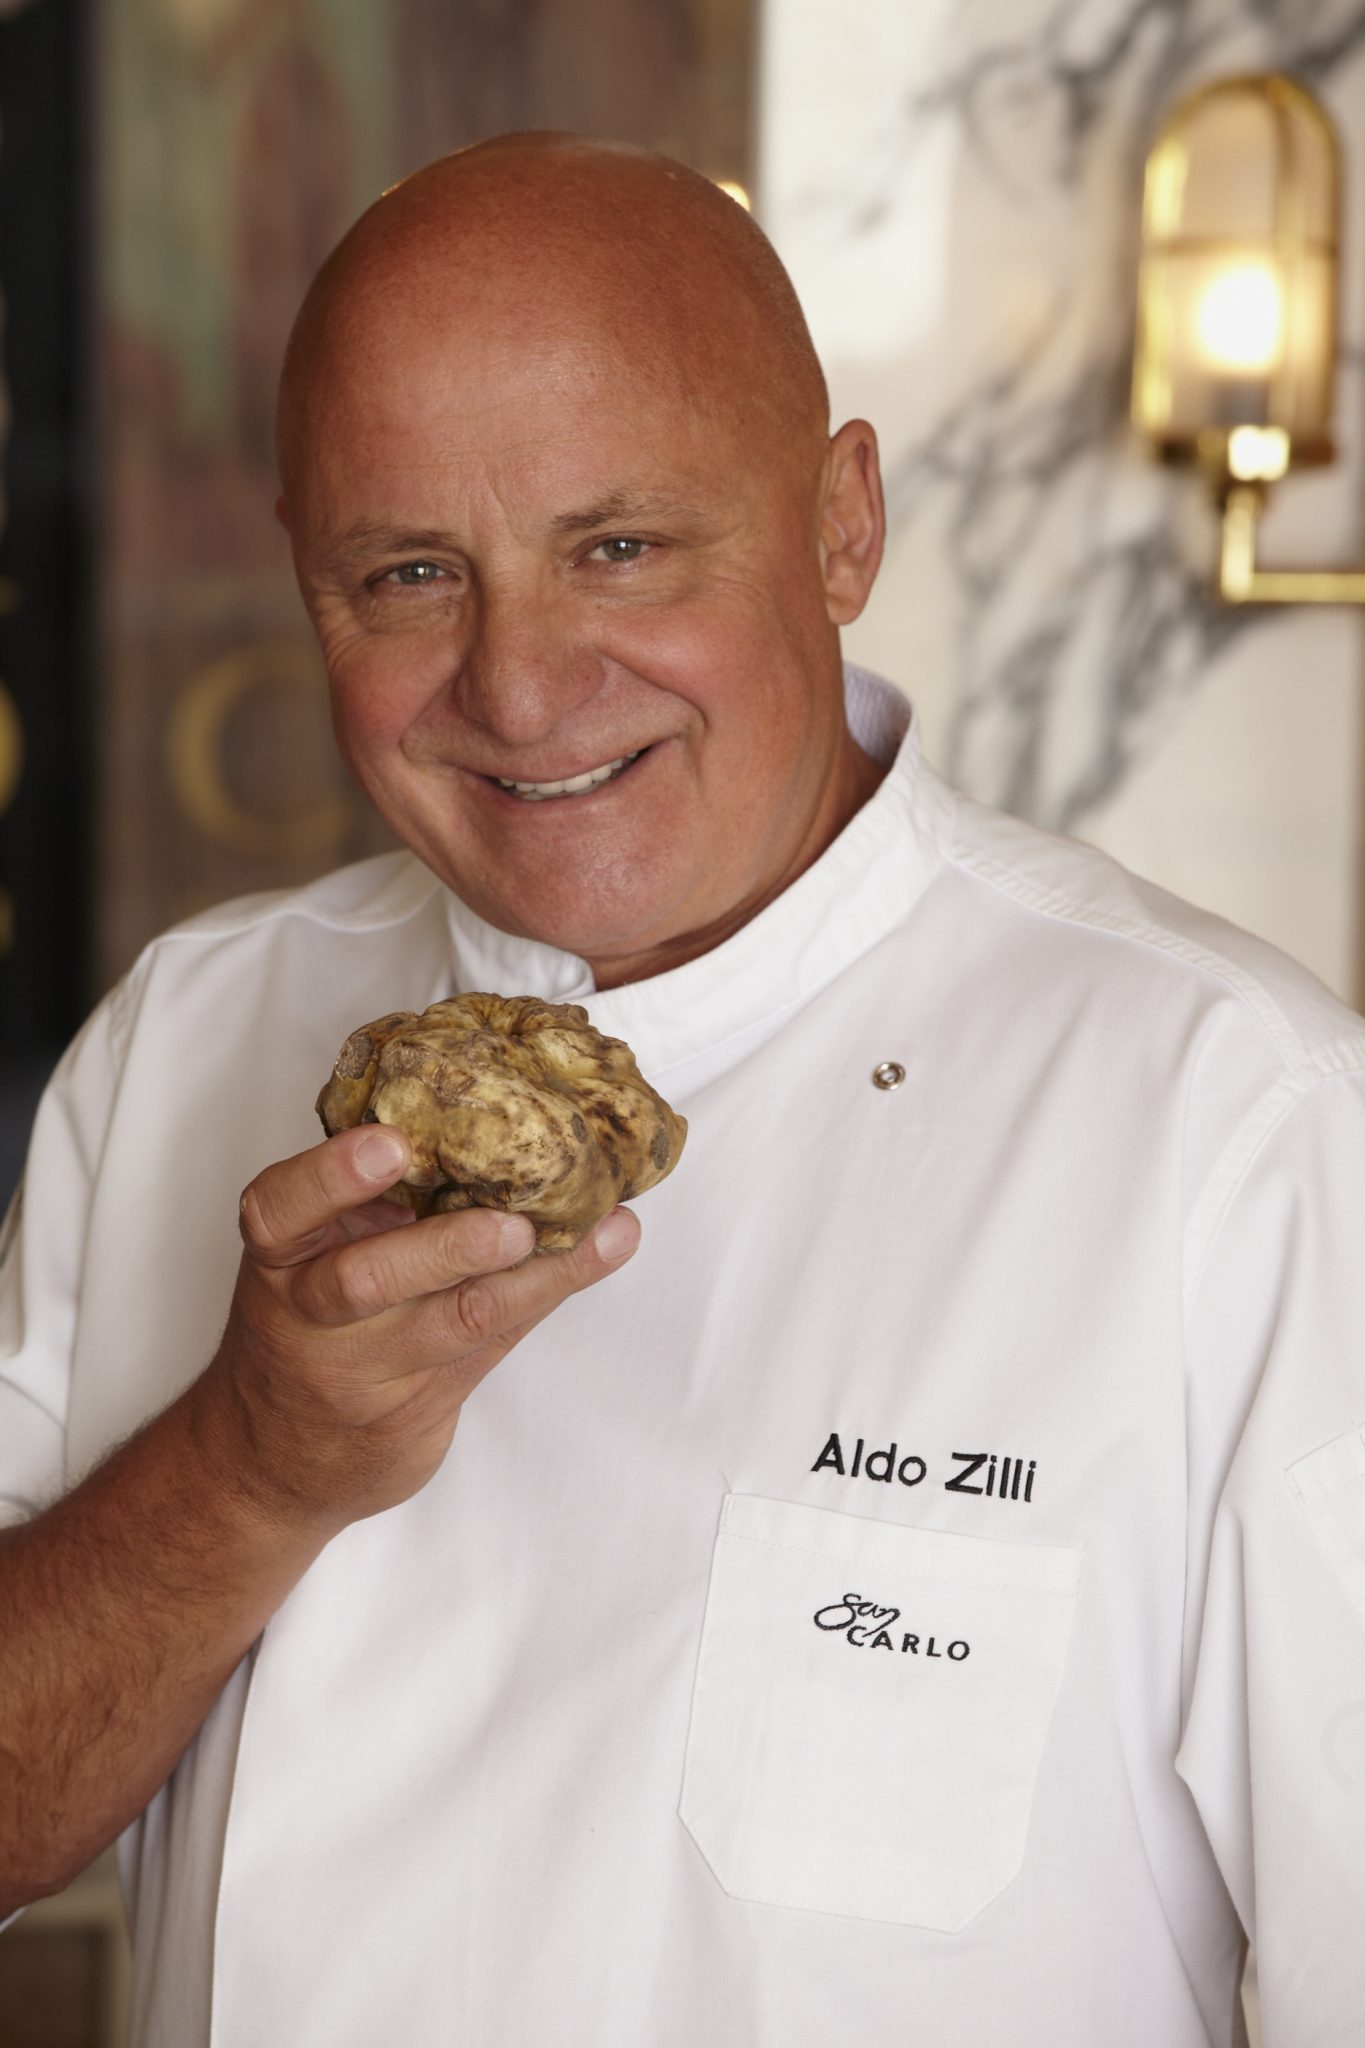 Aldo Zilli jets into San Carlo Birmingham with world's most expensive food